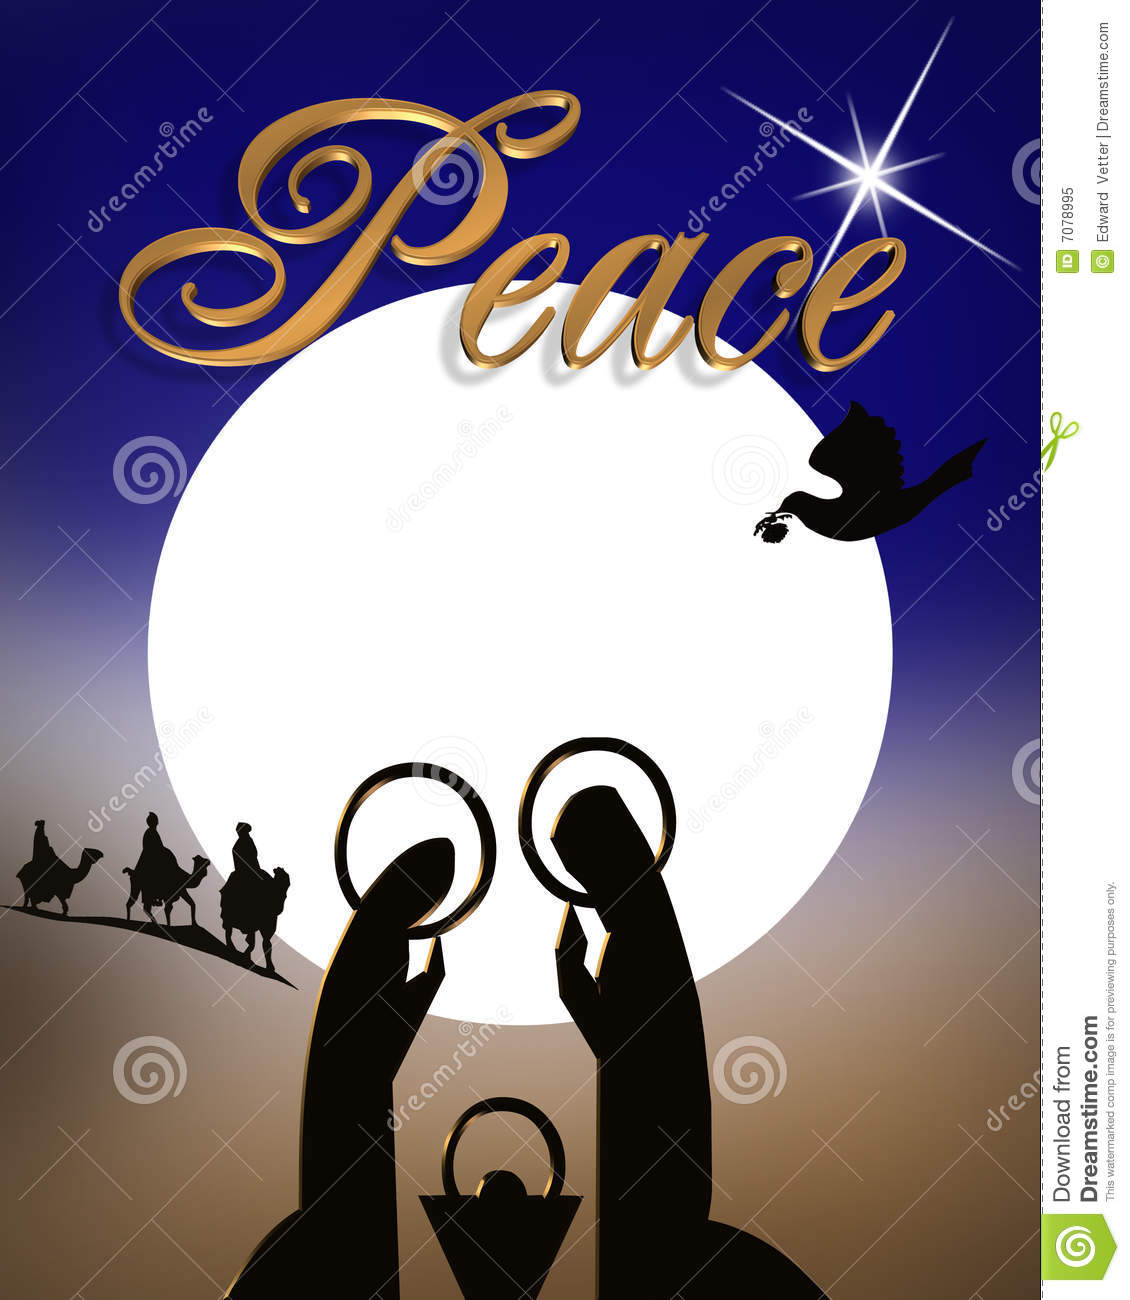 Christmas Nativity Religious Abstract Royalty Free Stock Photo - Image ...